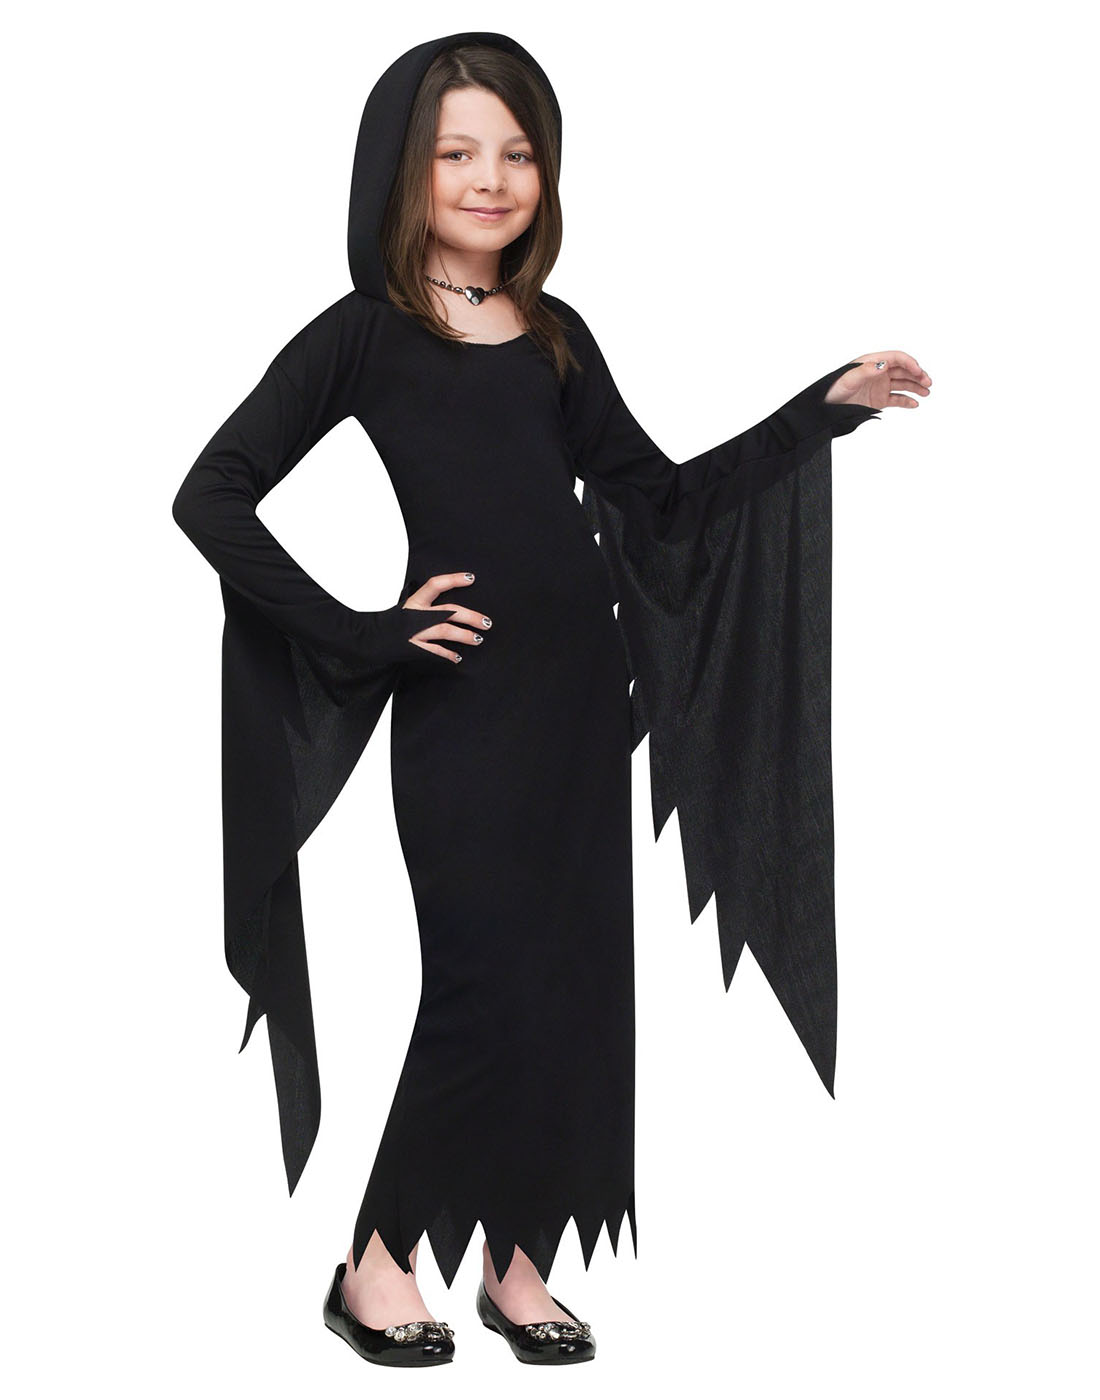 Hooded Gown Scream Movie Long Vampire Dress Girls Witch Halloween ...